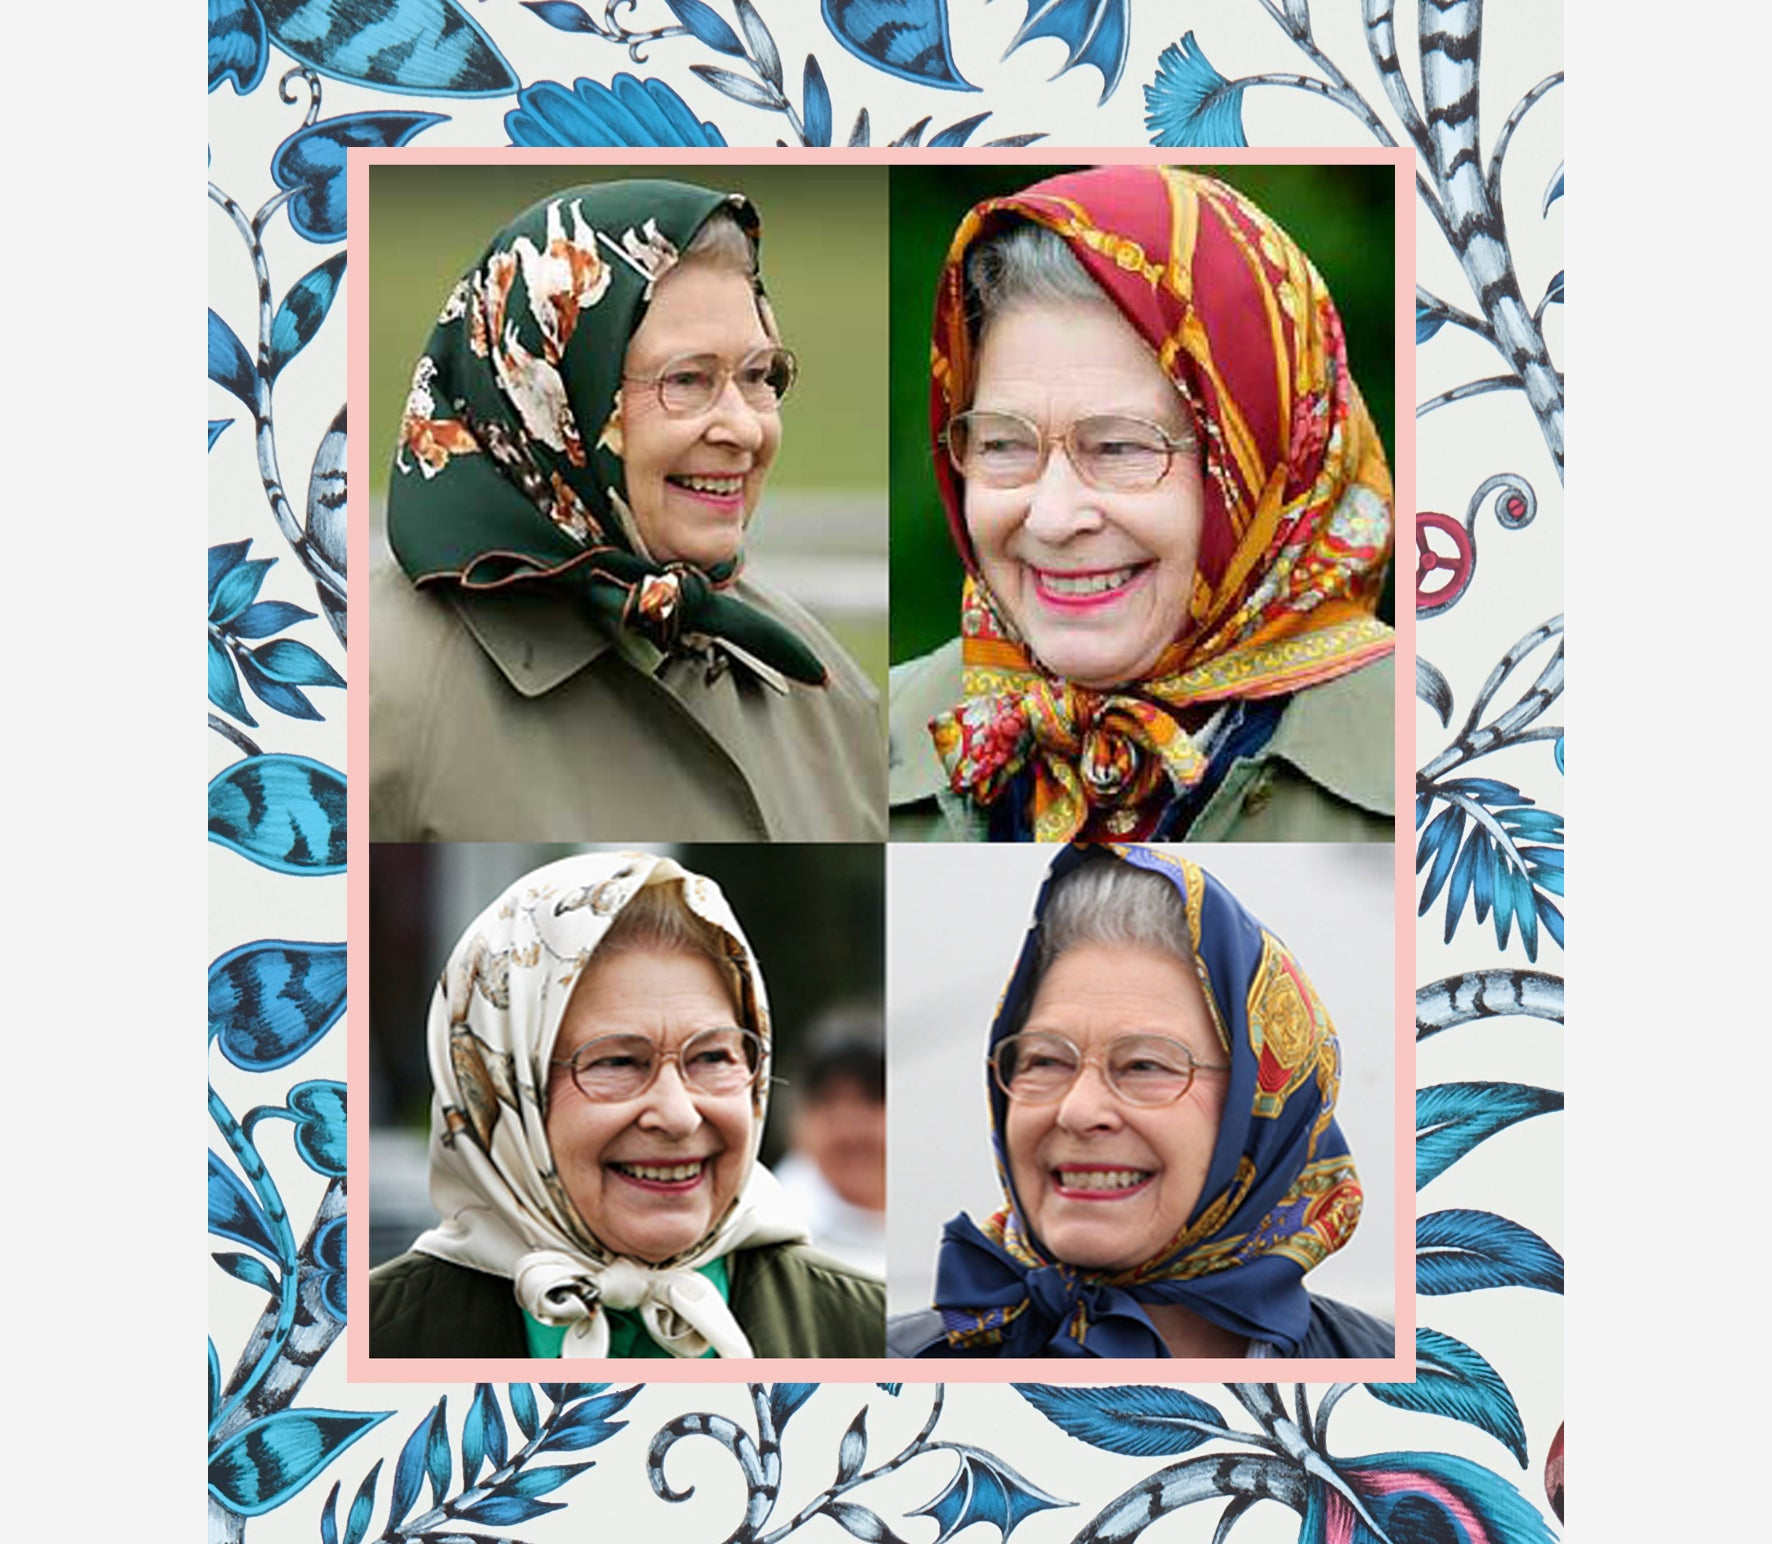 Take inspiration from Her Majesty The Queen with your scarf styling this season. Use one of Emma J Shipley's hand drawn, fantastical silk scarves to achieve the same iconic head scarf look